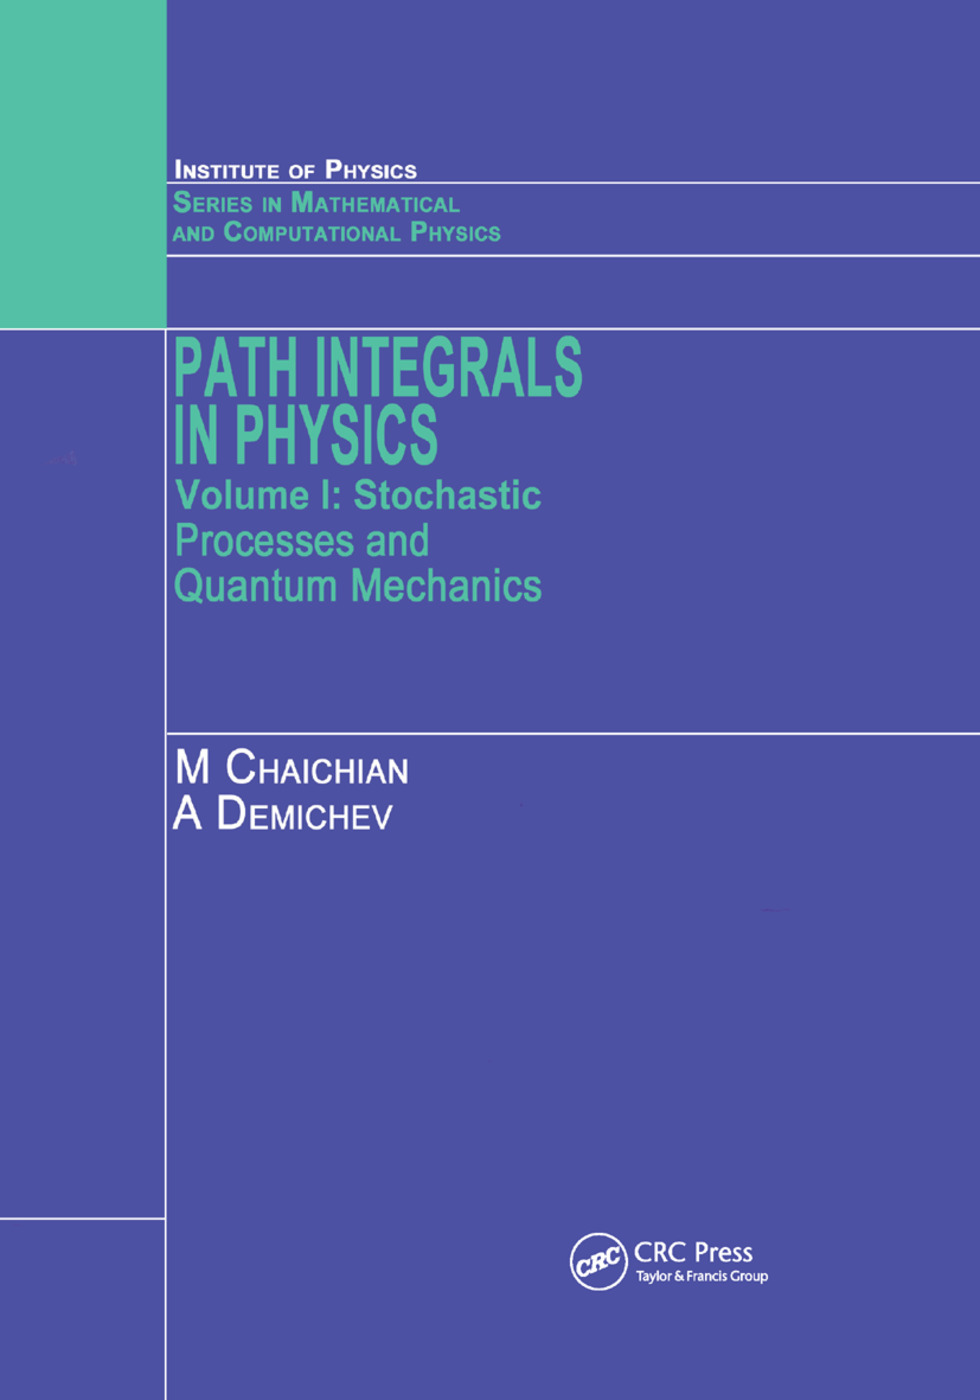 Path Integrals in Physics: Volume I Stochastic Processes and Quantum Mechanics, 1st Edition (Paperback) book cover